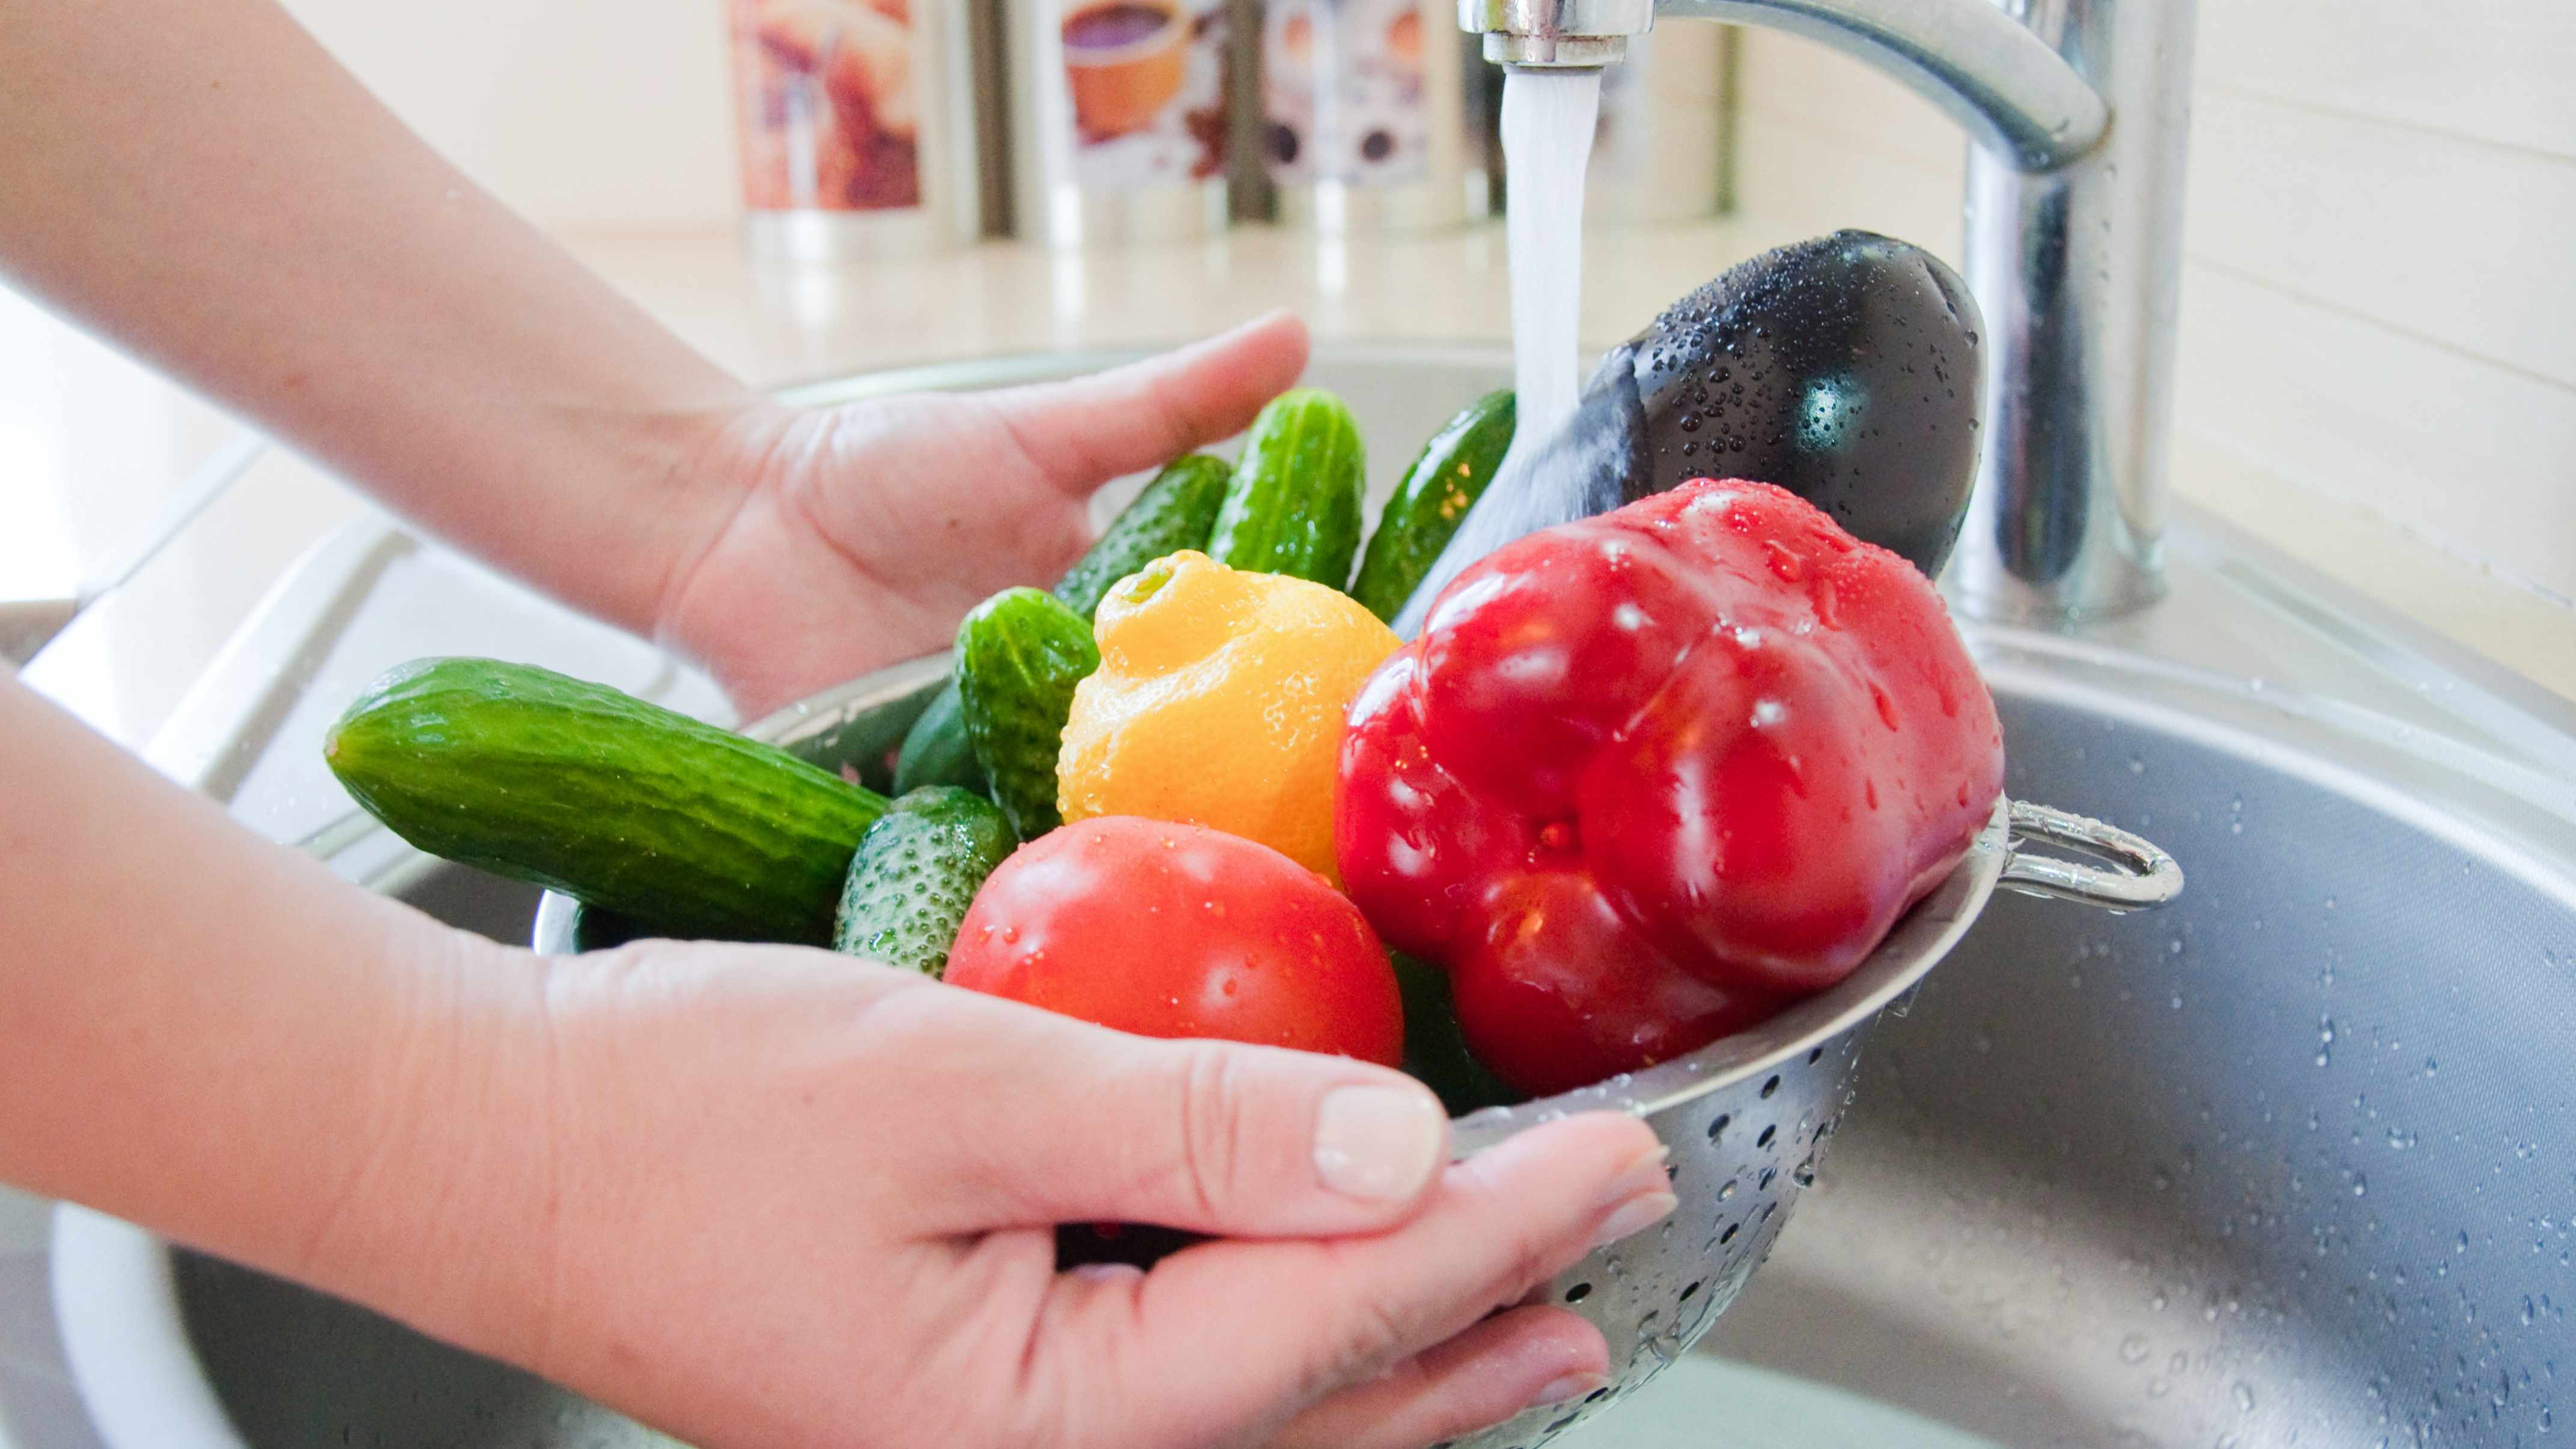 a-person-washing-vegetables-and-fruits-under-kitchen-water-faucet-16x9